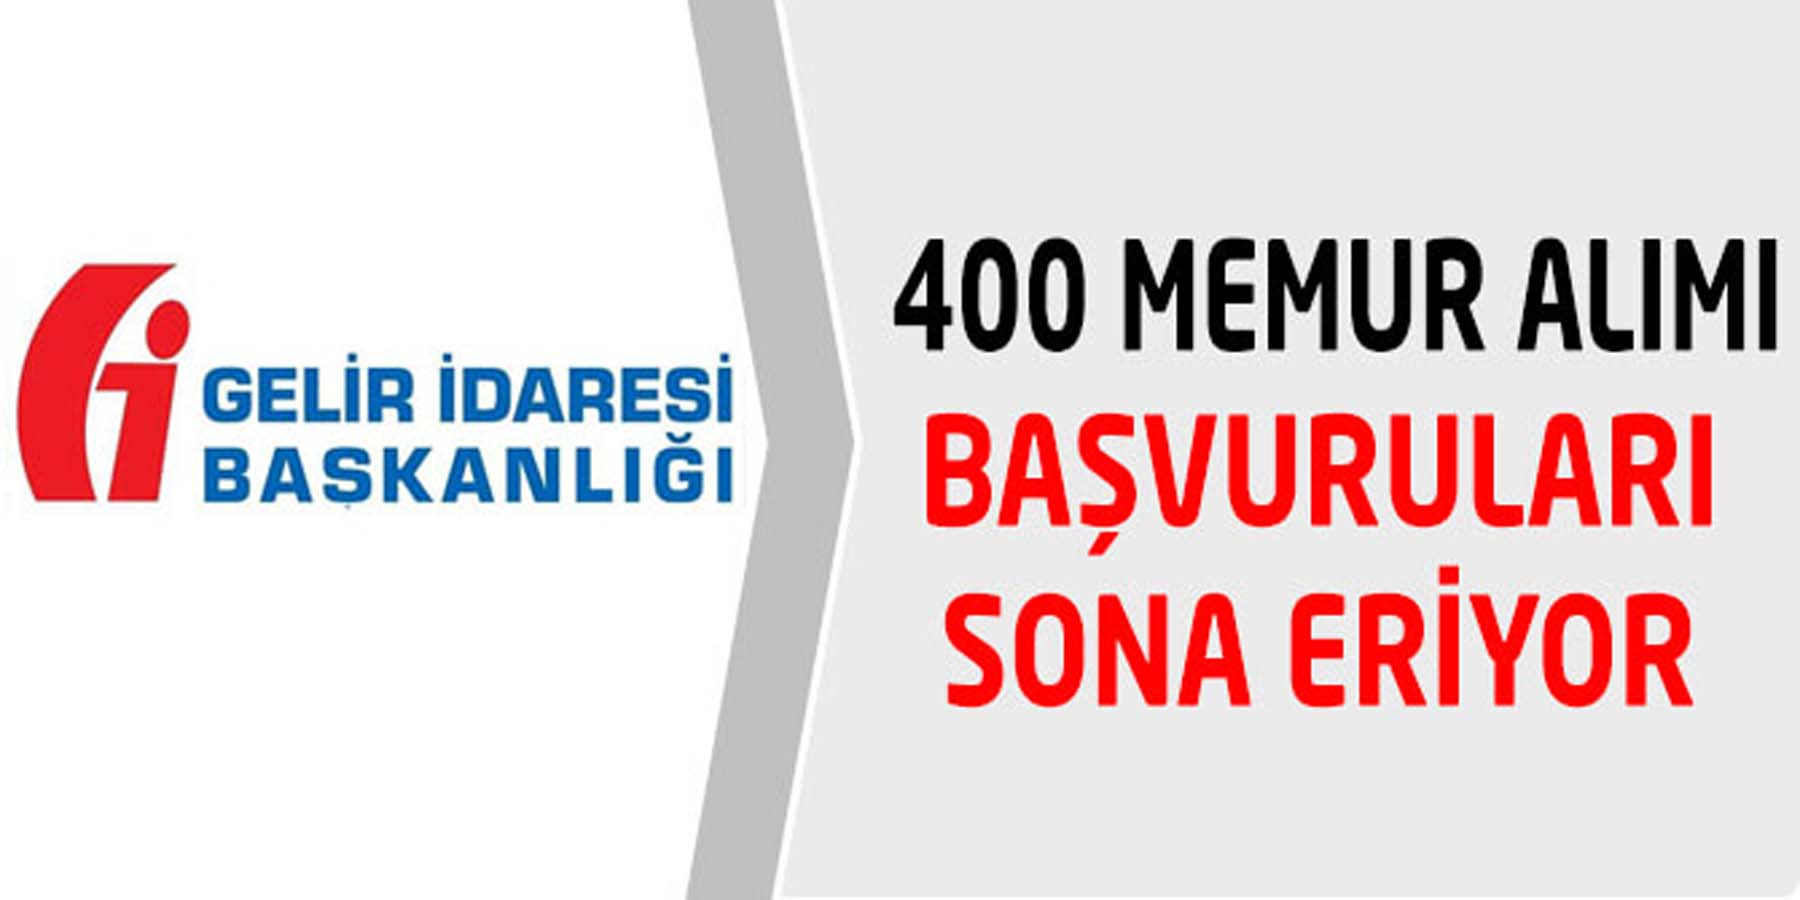 Gelir İdaresi Başkanlığı 400 Memur Alımı Başvuruları Sona Eriyor